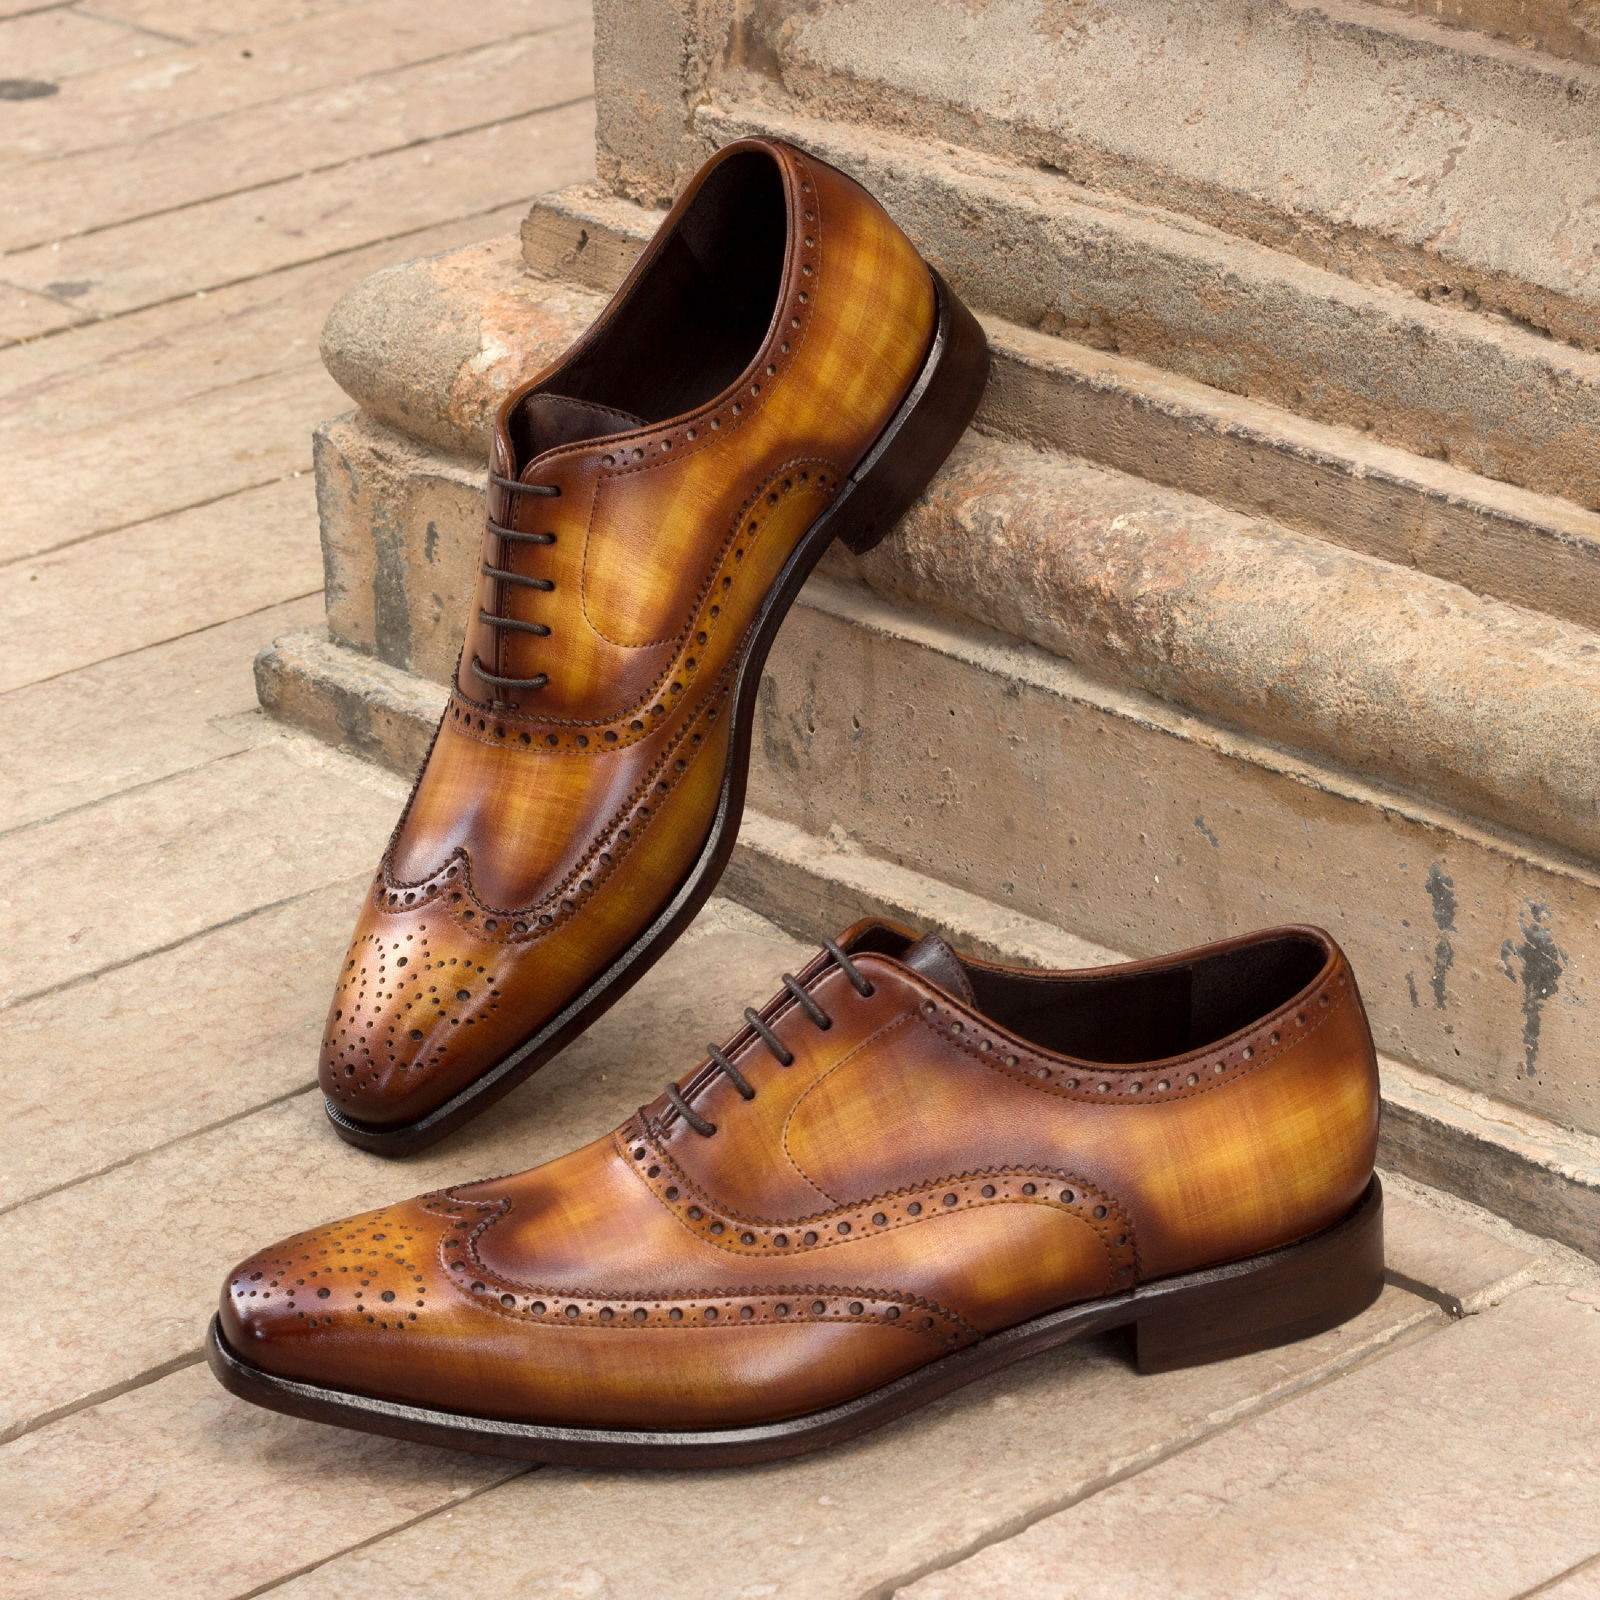 Full brogue  cognac crust patina + brown crust patina : 340€